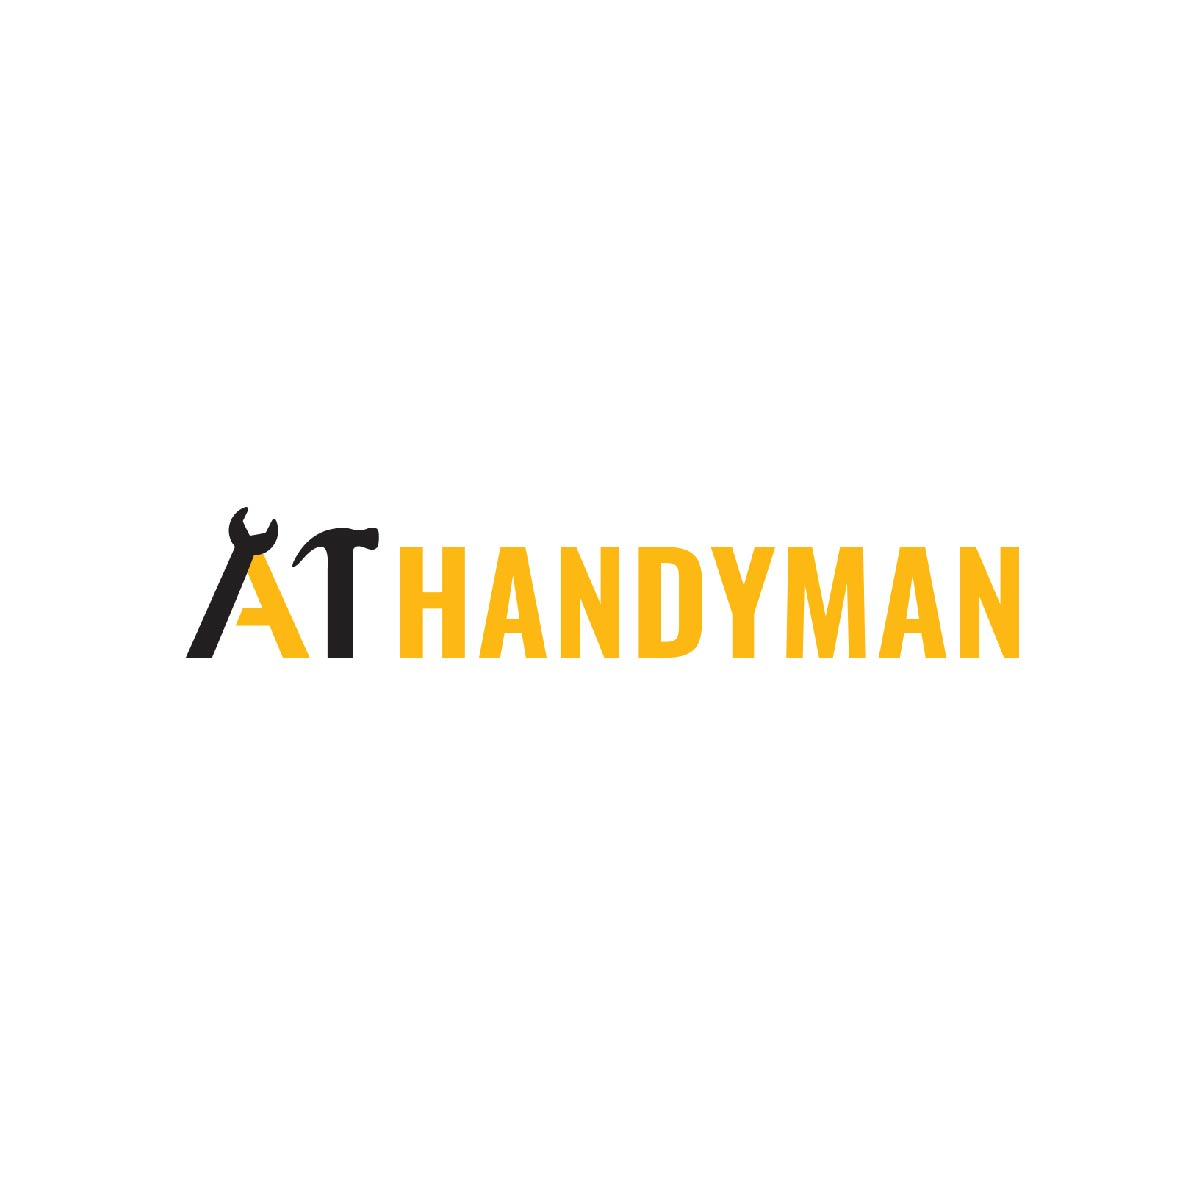 A1 Handyman Singapore Announces Brand Unification Partnership With Everyworks Singapore